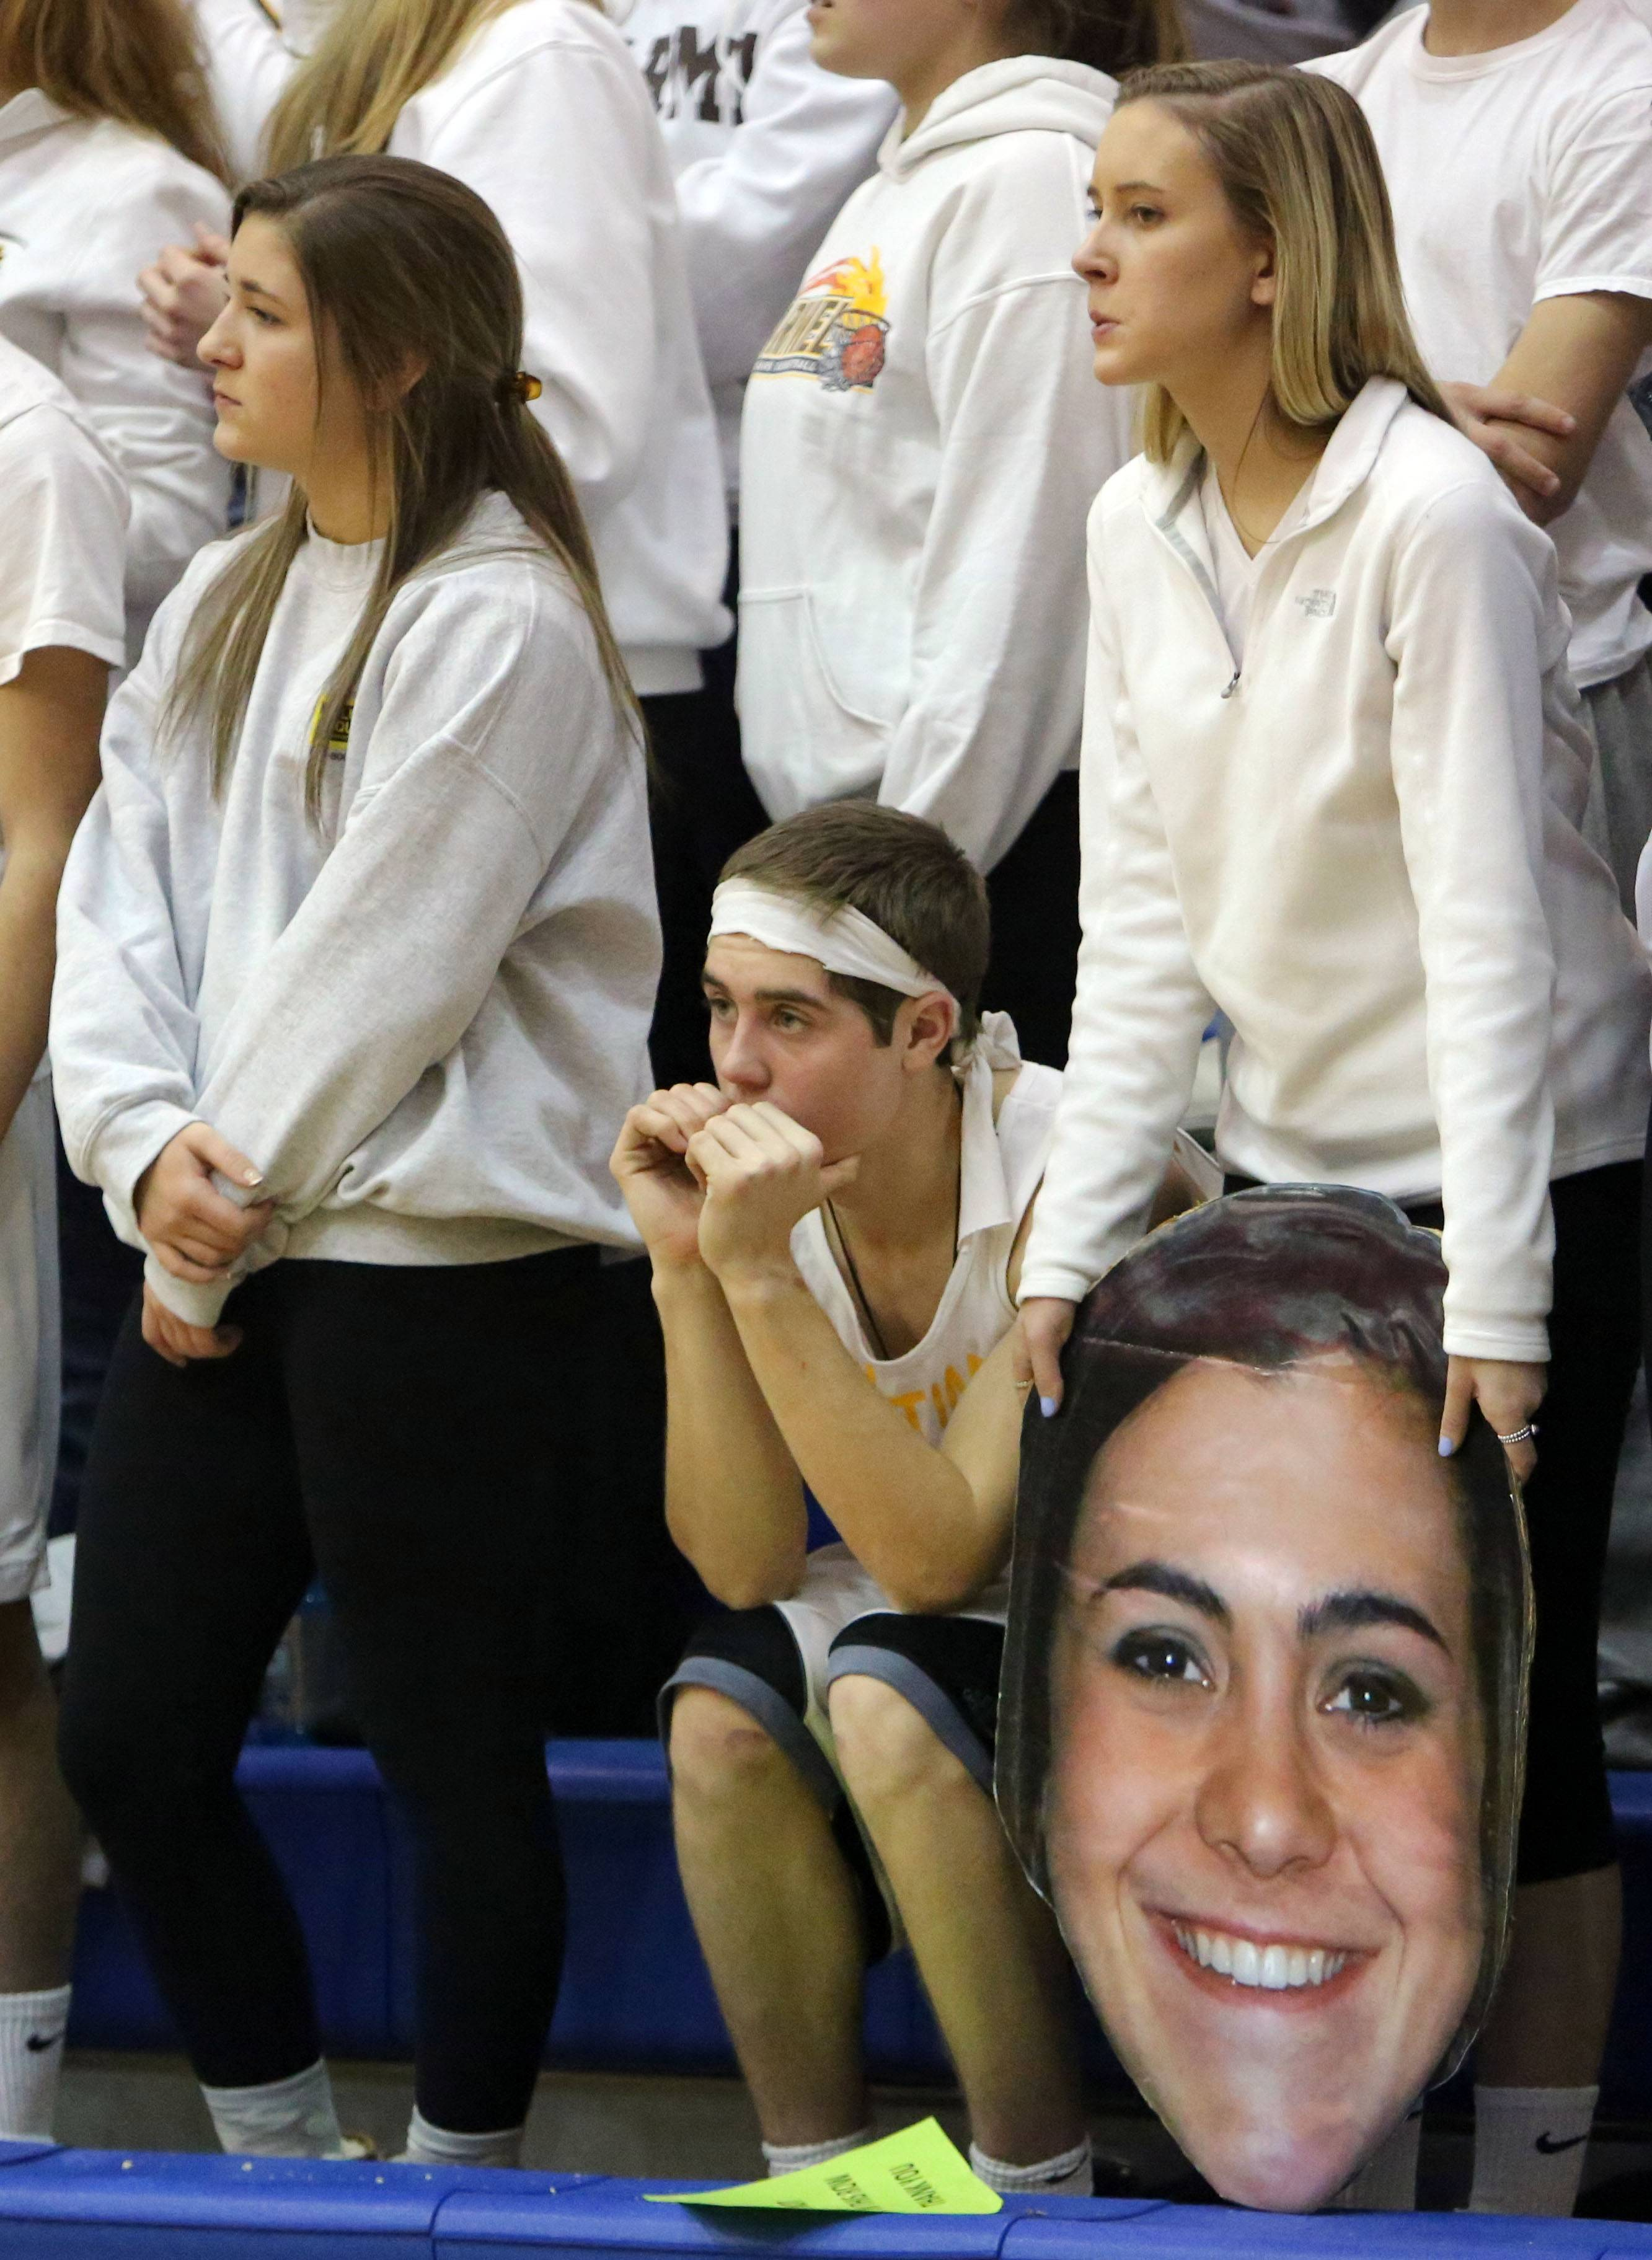 Carmel fans react after the game.